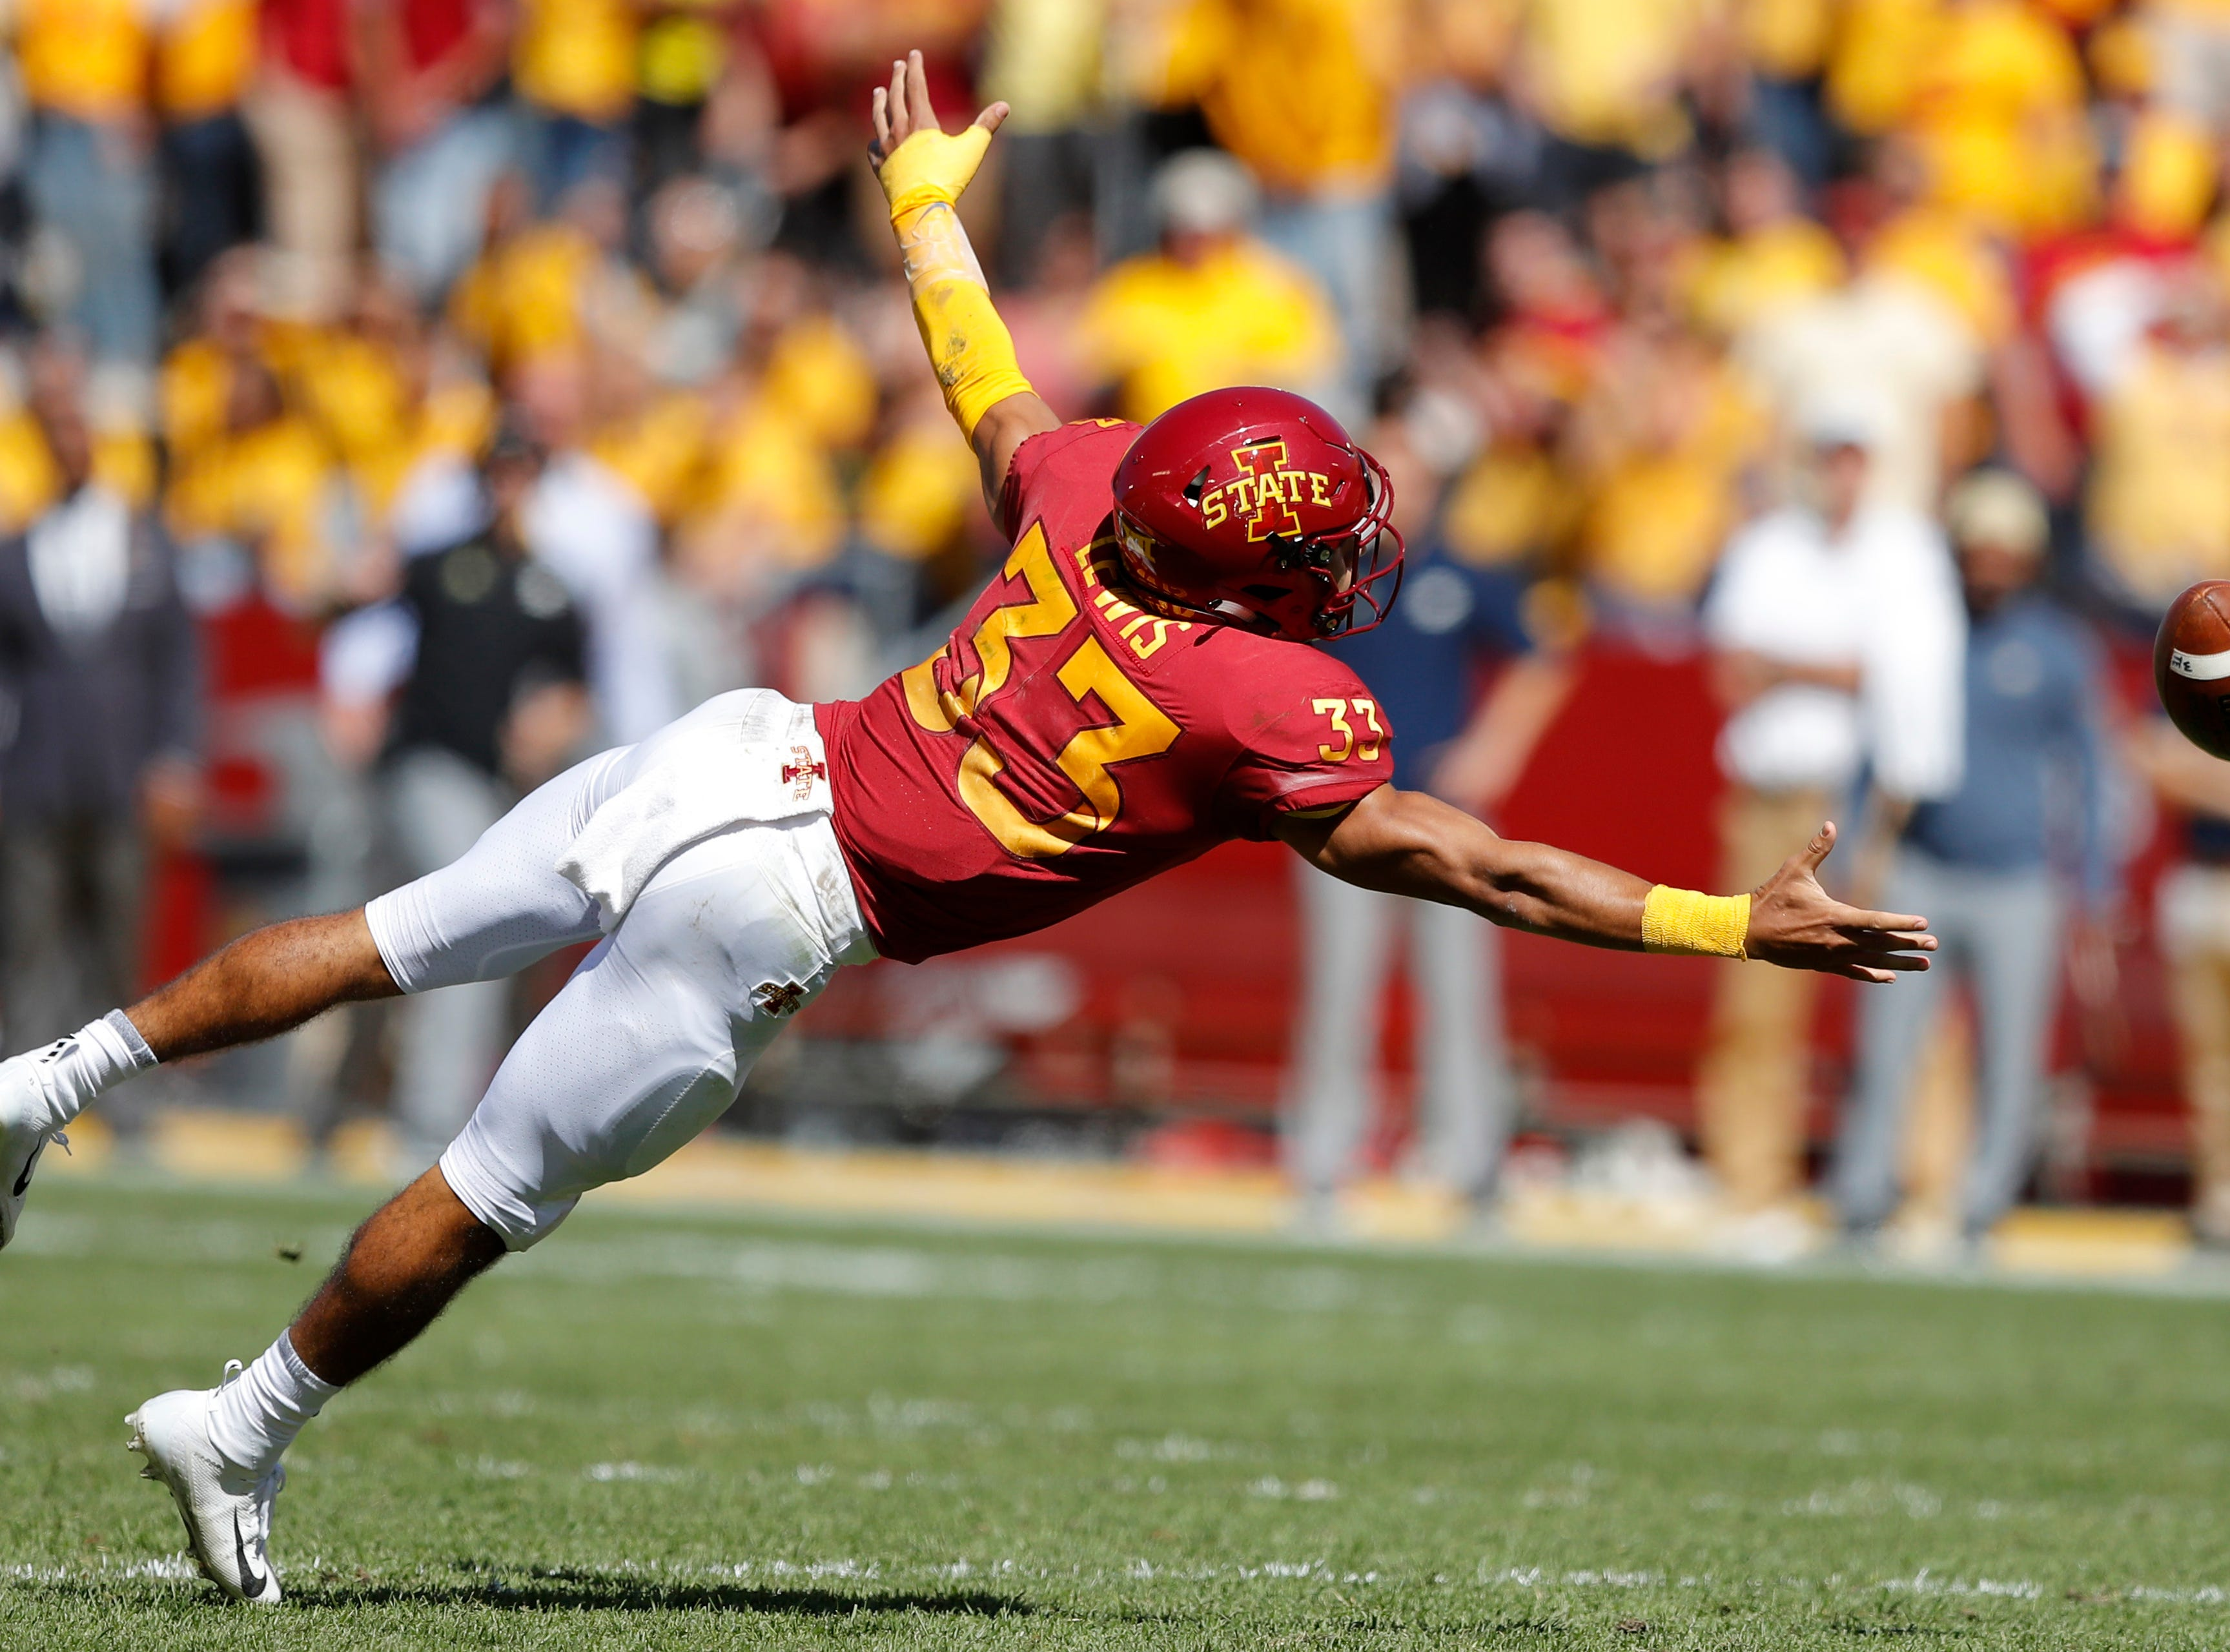 Iowa State defensive back Braxton Lewis makes a diving attempt for an interception during the second half of an NCAA college football game against Akron, Saturday, Sept. 22, 2018, in Ames, Iowa. The pass fell incomplete. Iowa State won 26-13. (AP Photo/Charlie Neibergall)